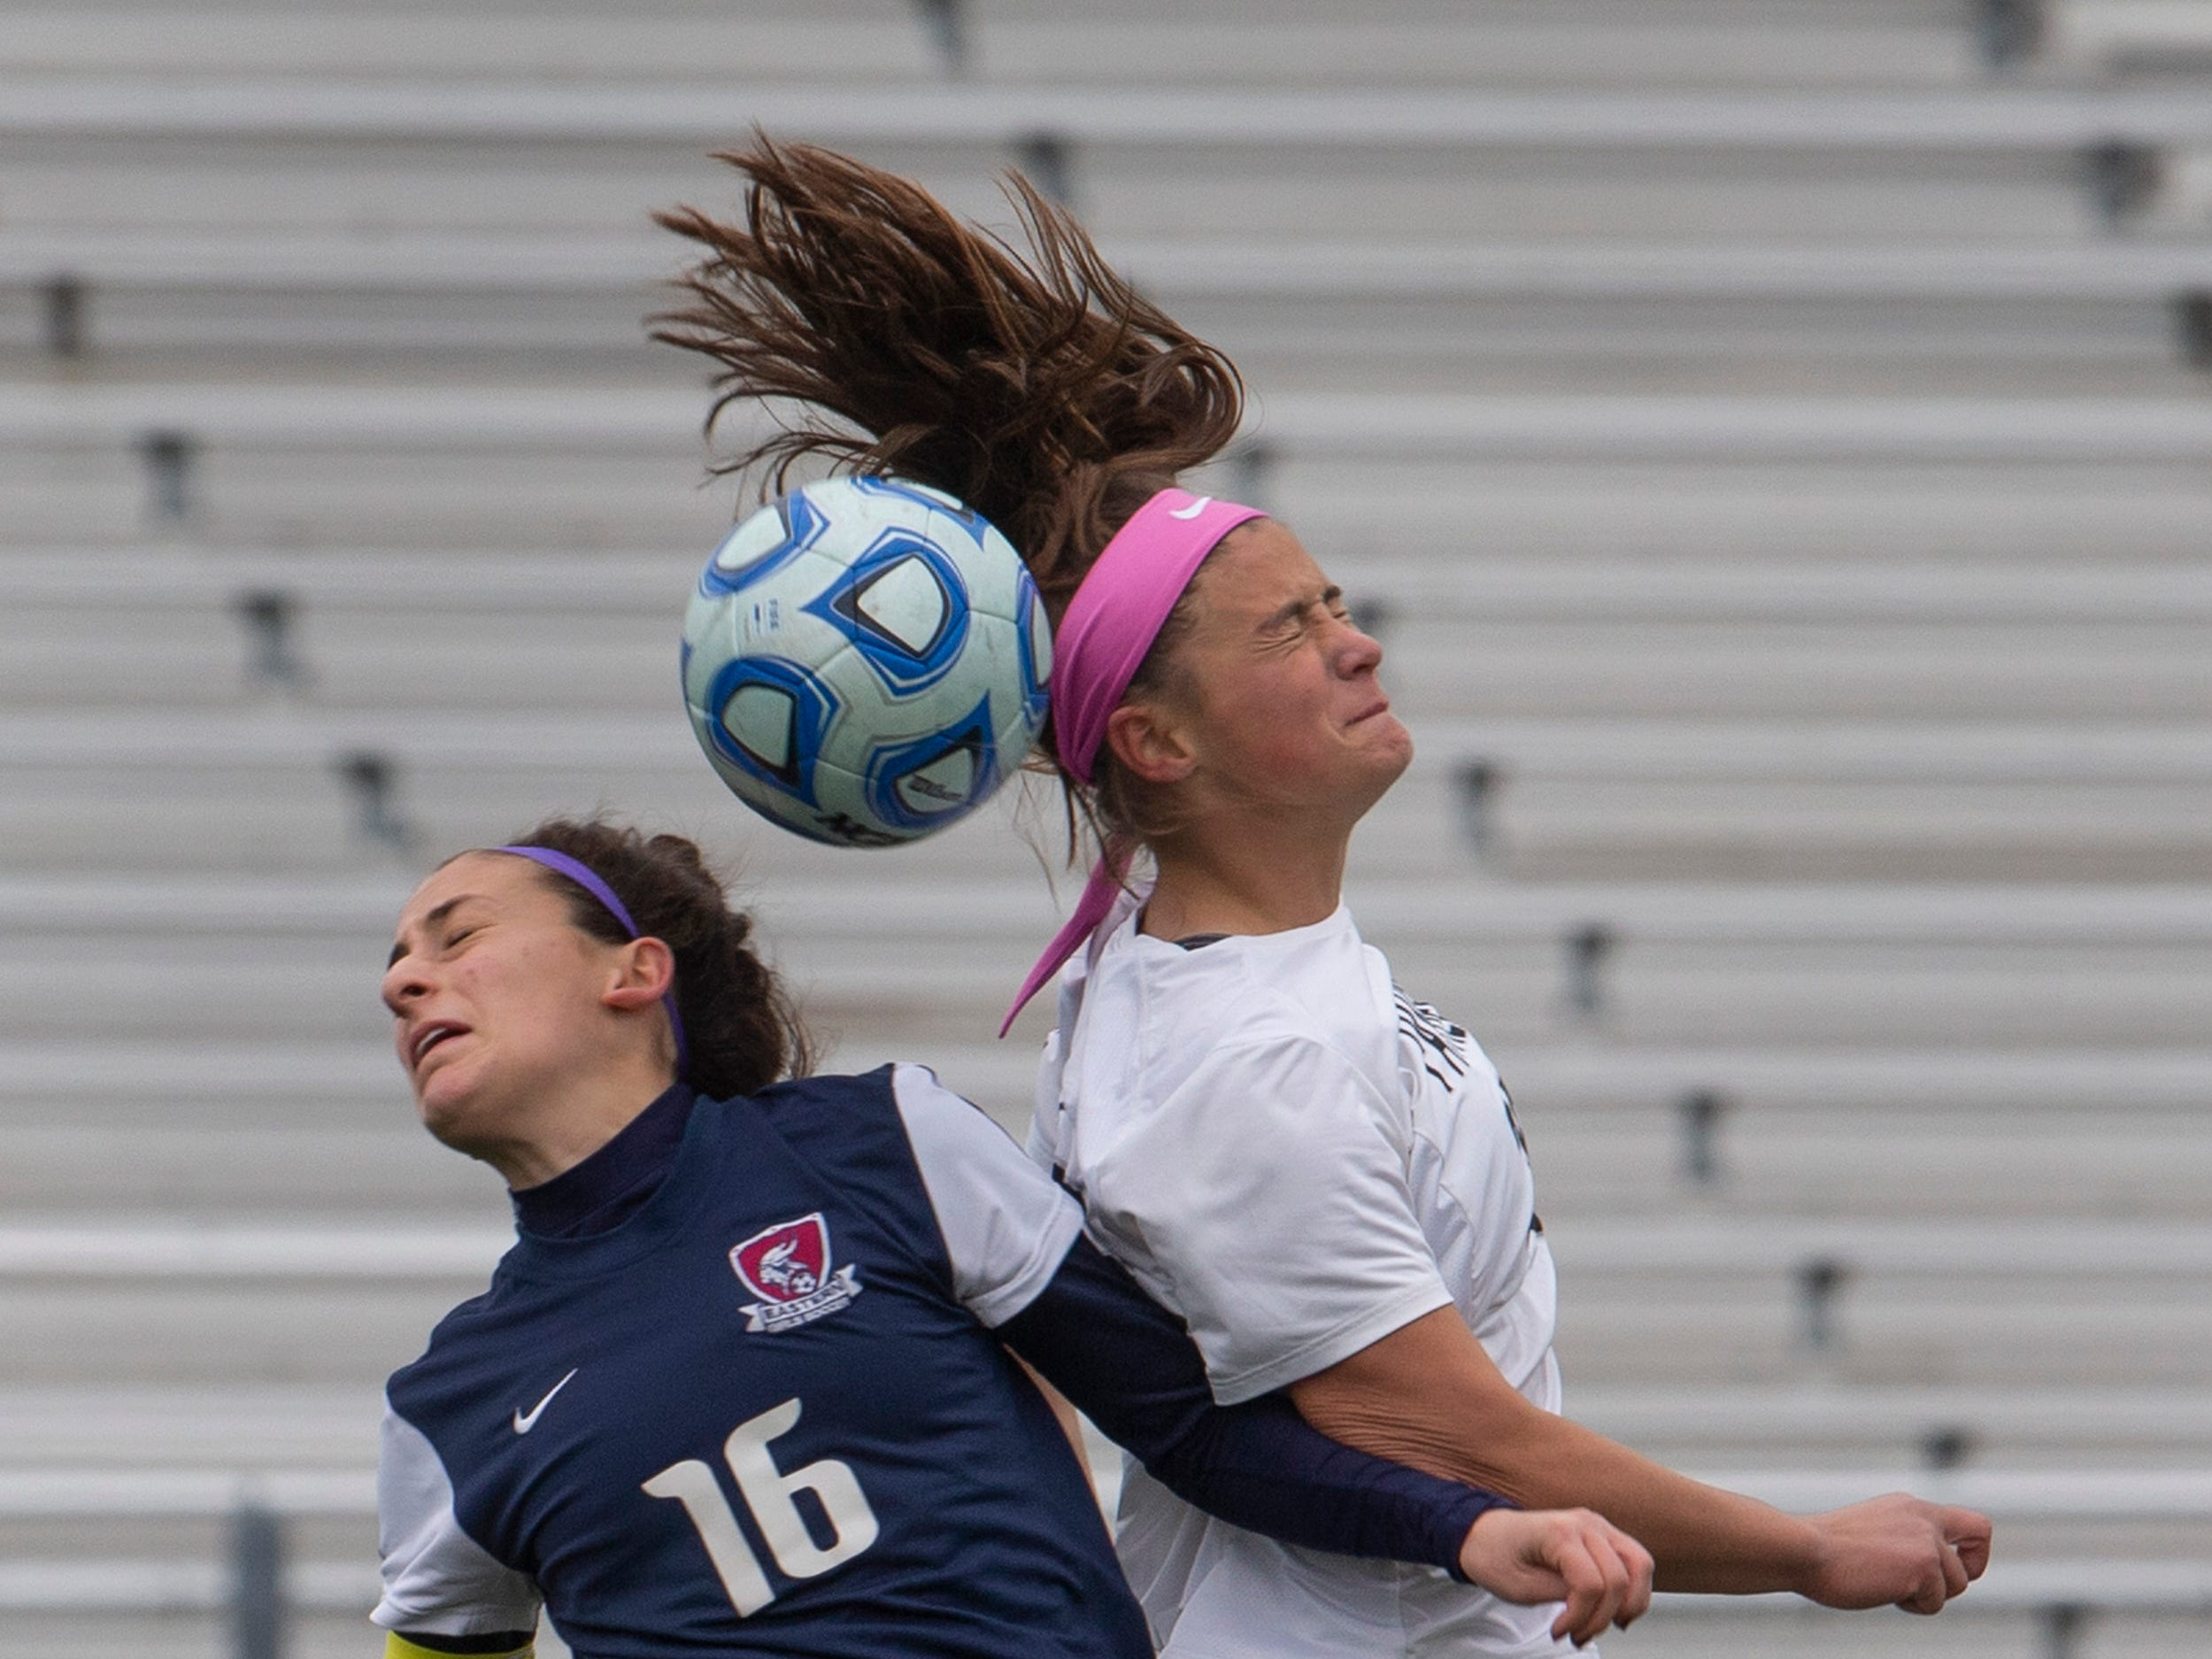 Eastern's Tori Accardo and Bridewater's Allison Lowrey battle for a header during second half action. Bridgewater-Raritan vs. Eastern girls soccer in the NJSIAA Group IV final at Kean University.